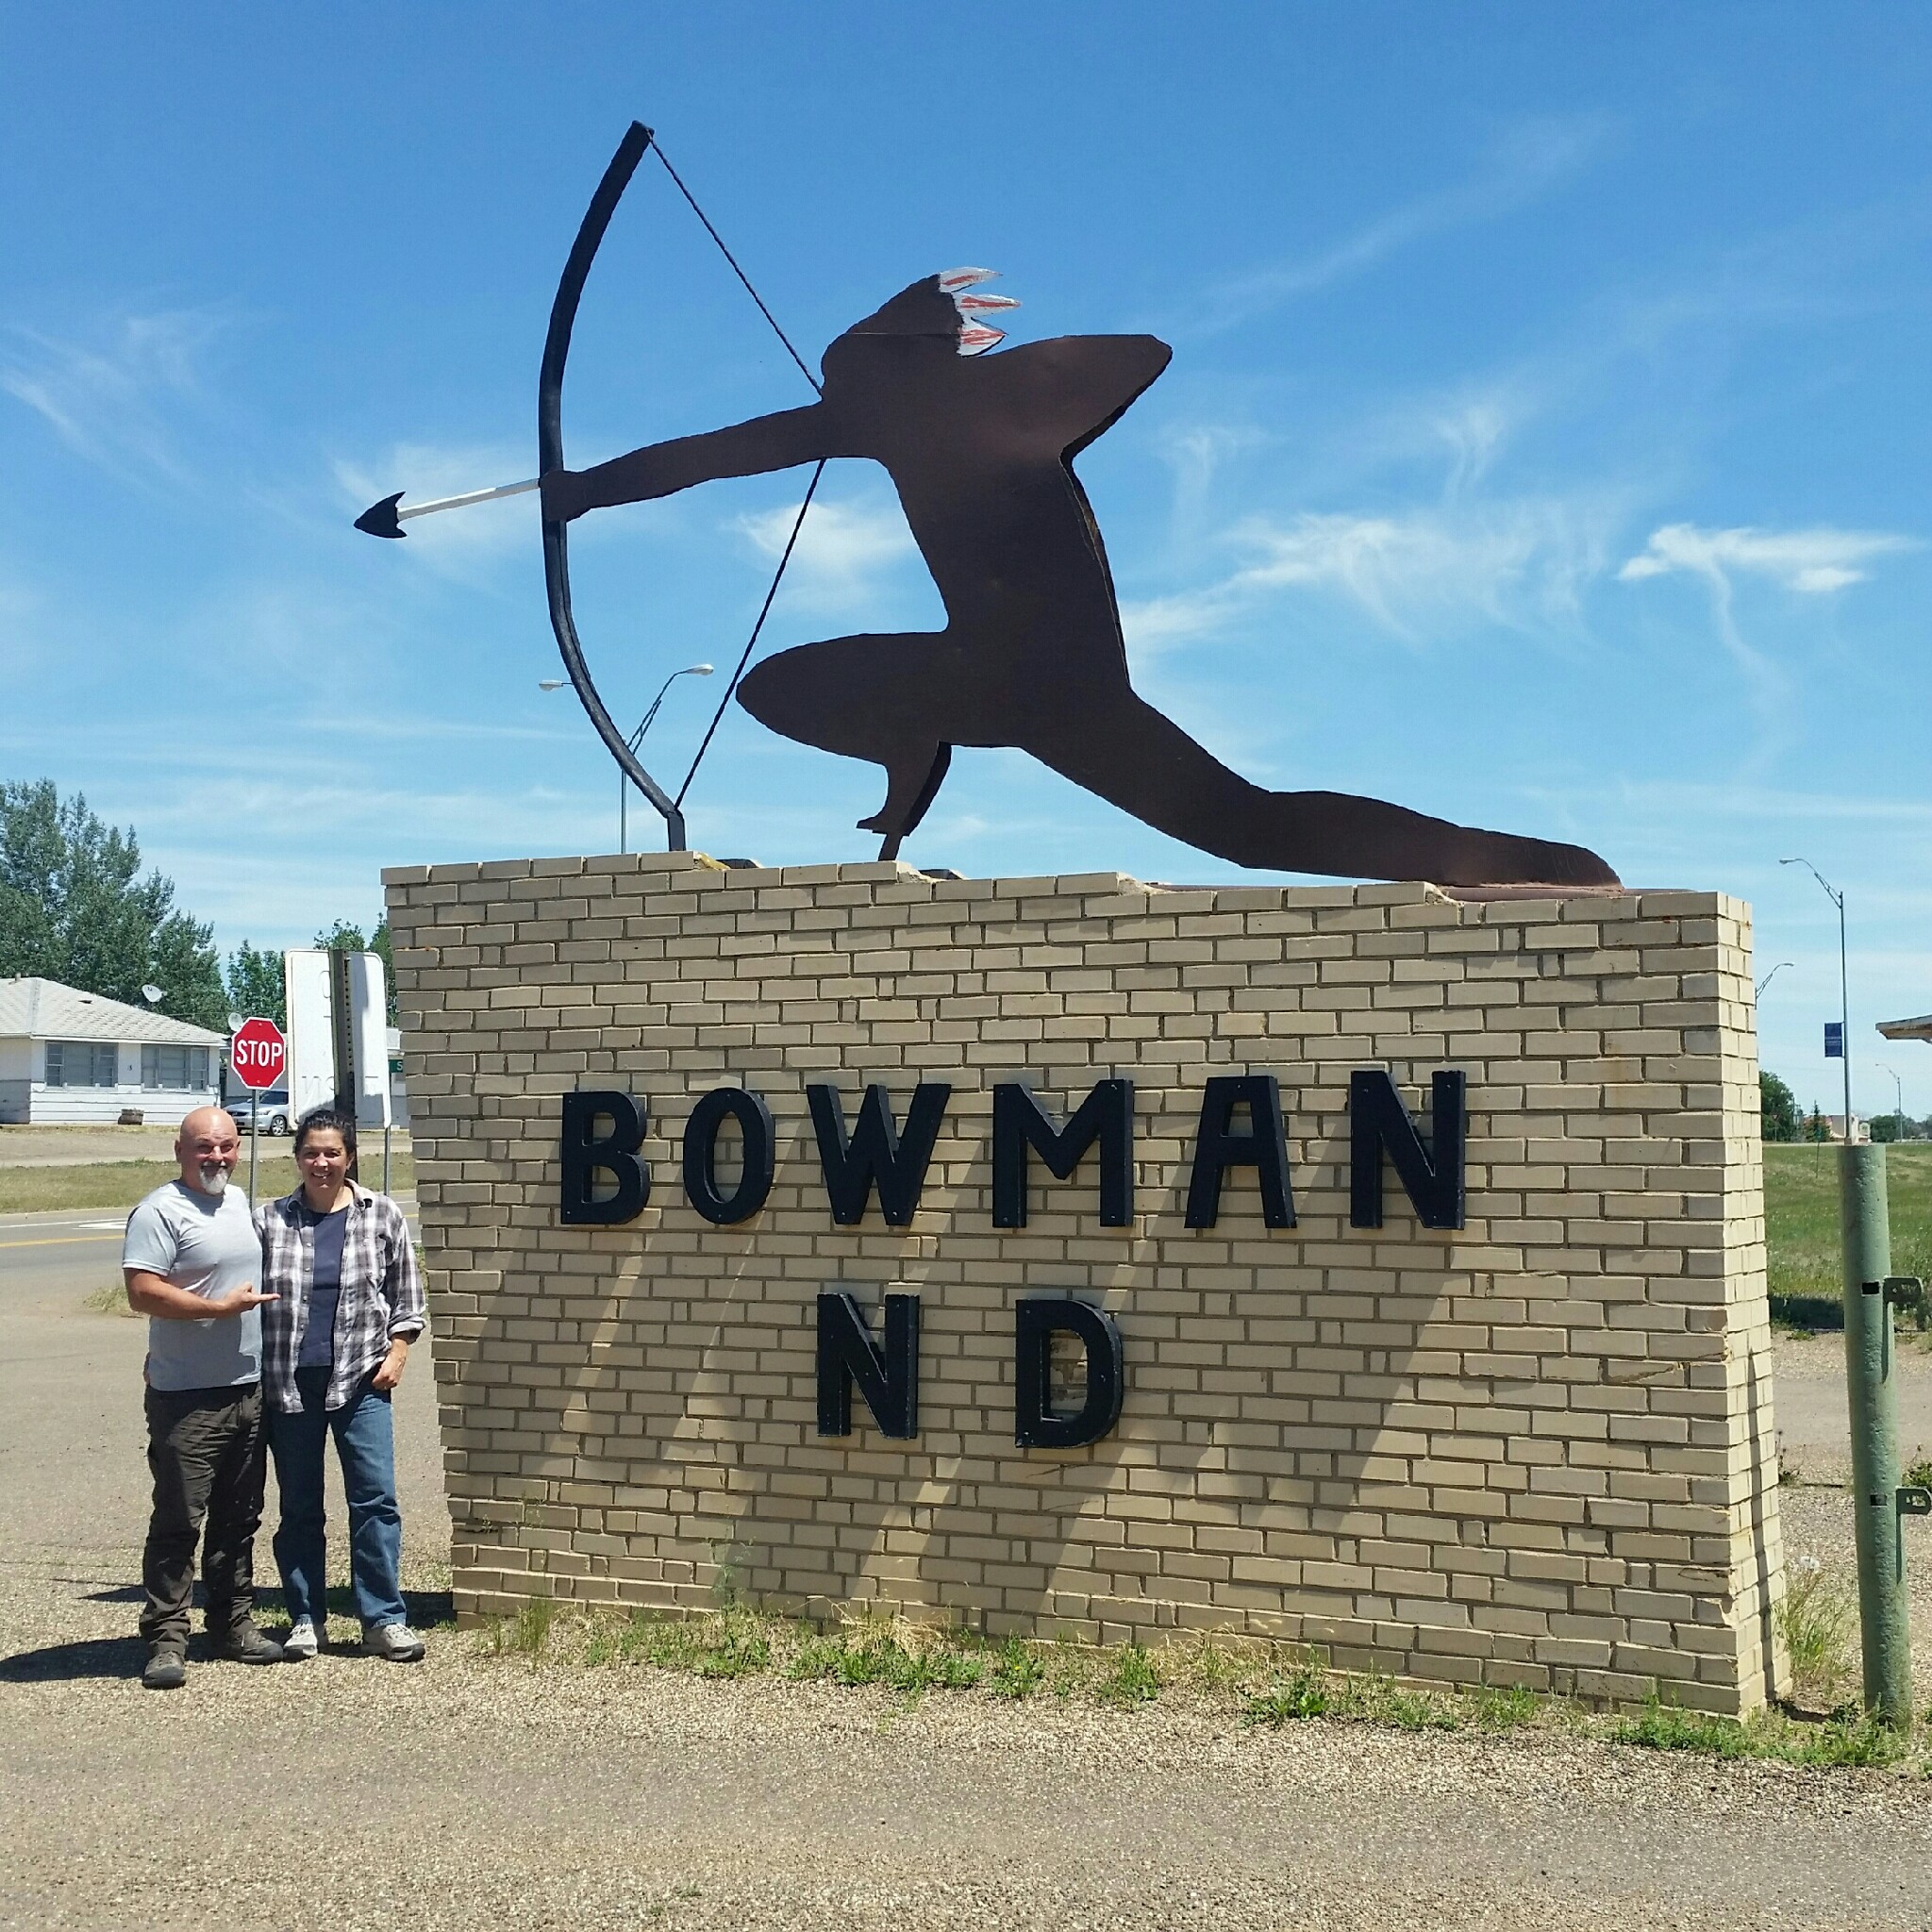 Bowman, North Dakota